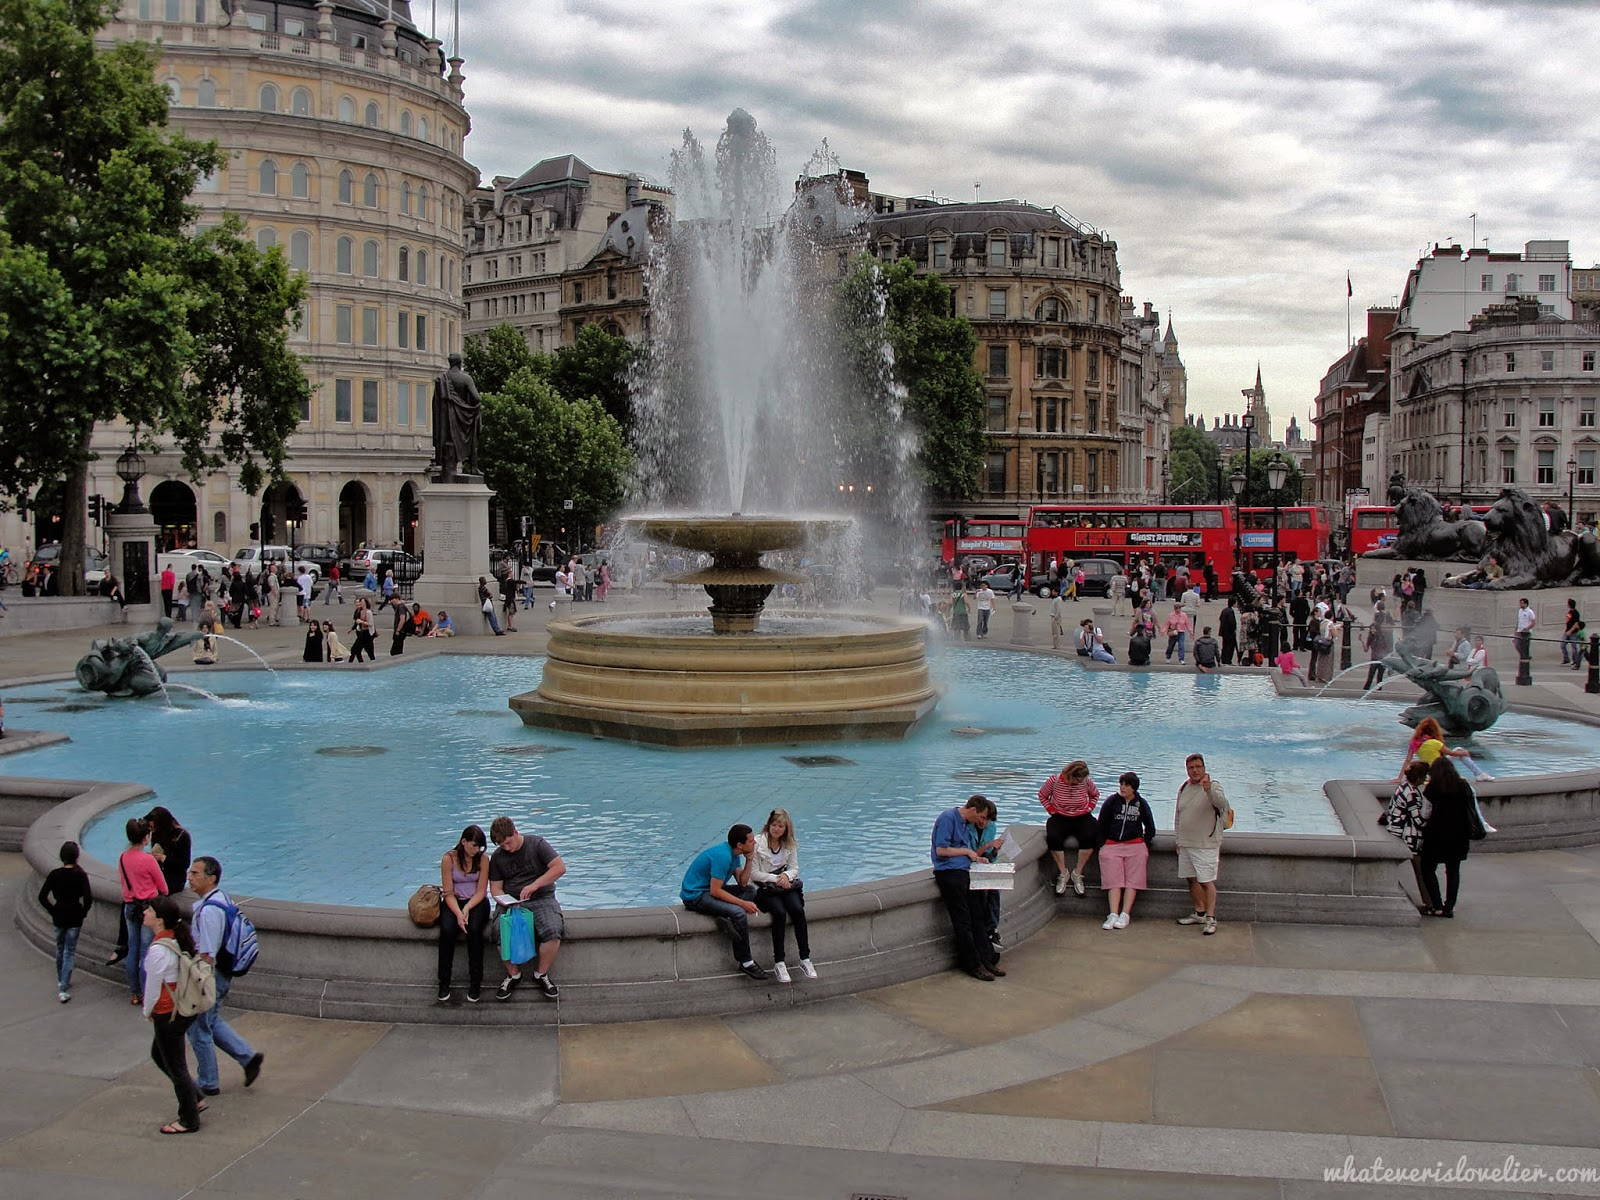 Travel Tuesday: Trafalgar Square and The Ship in the Bottle